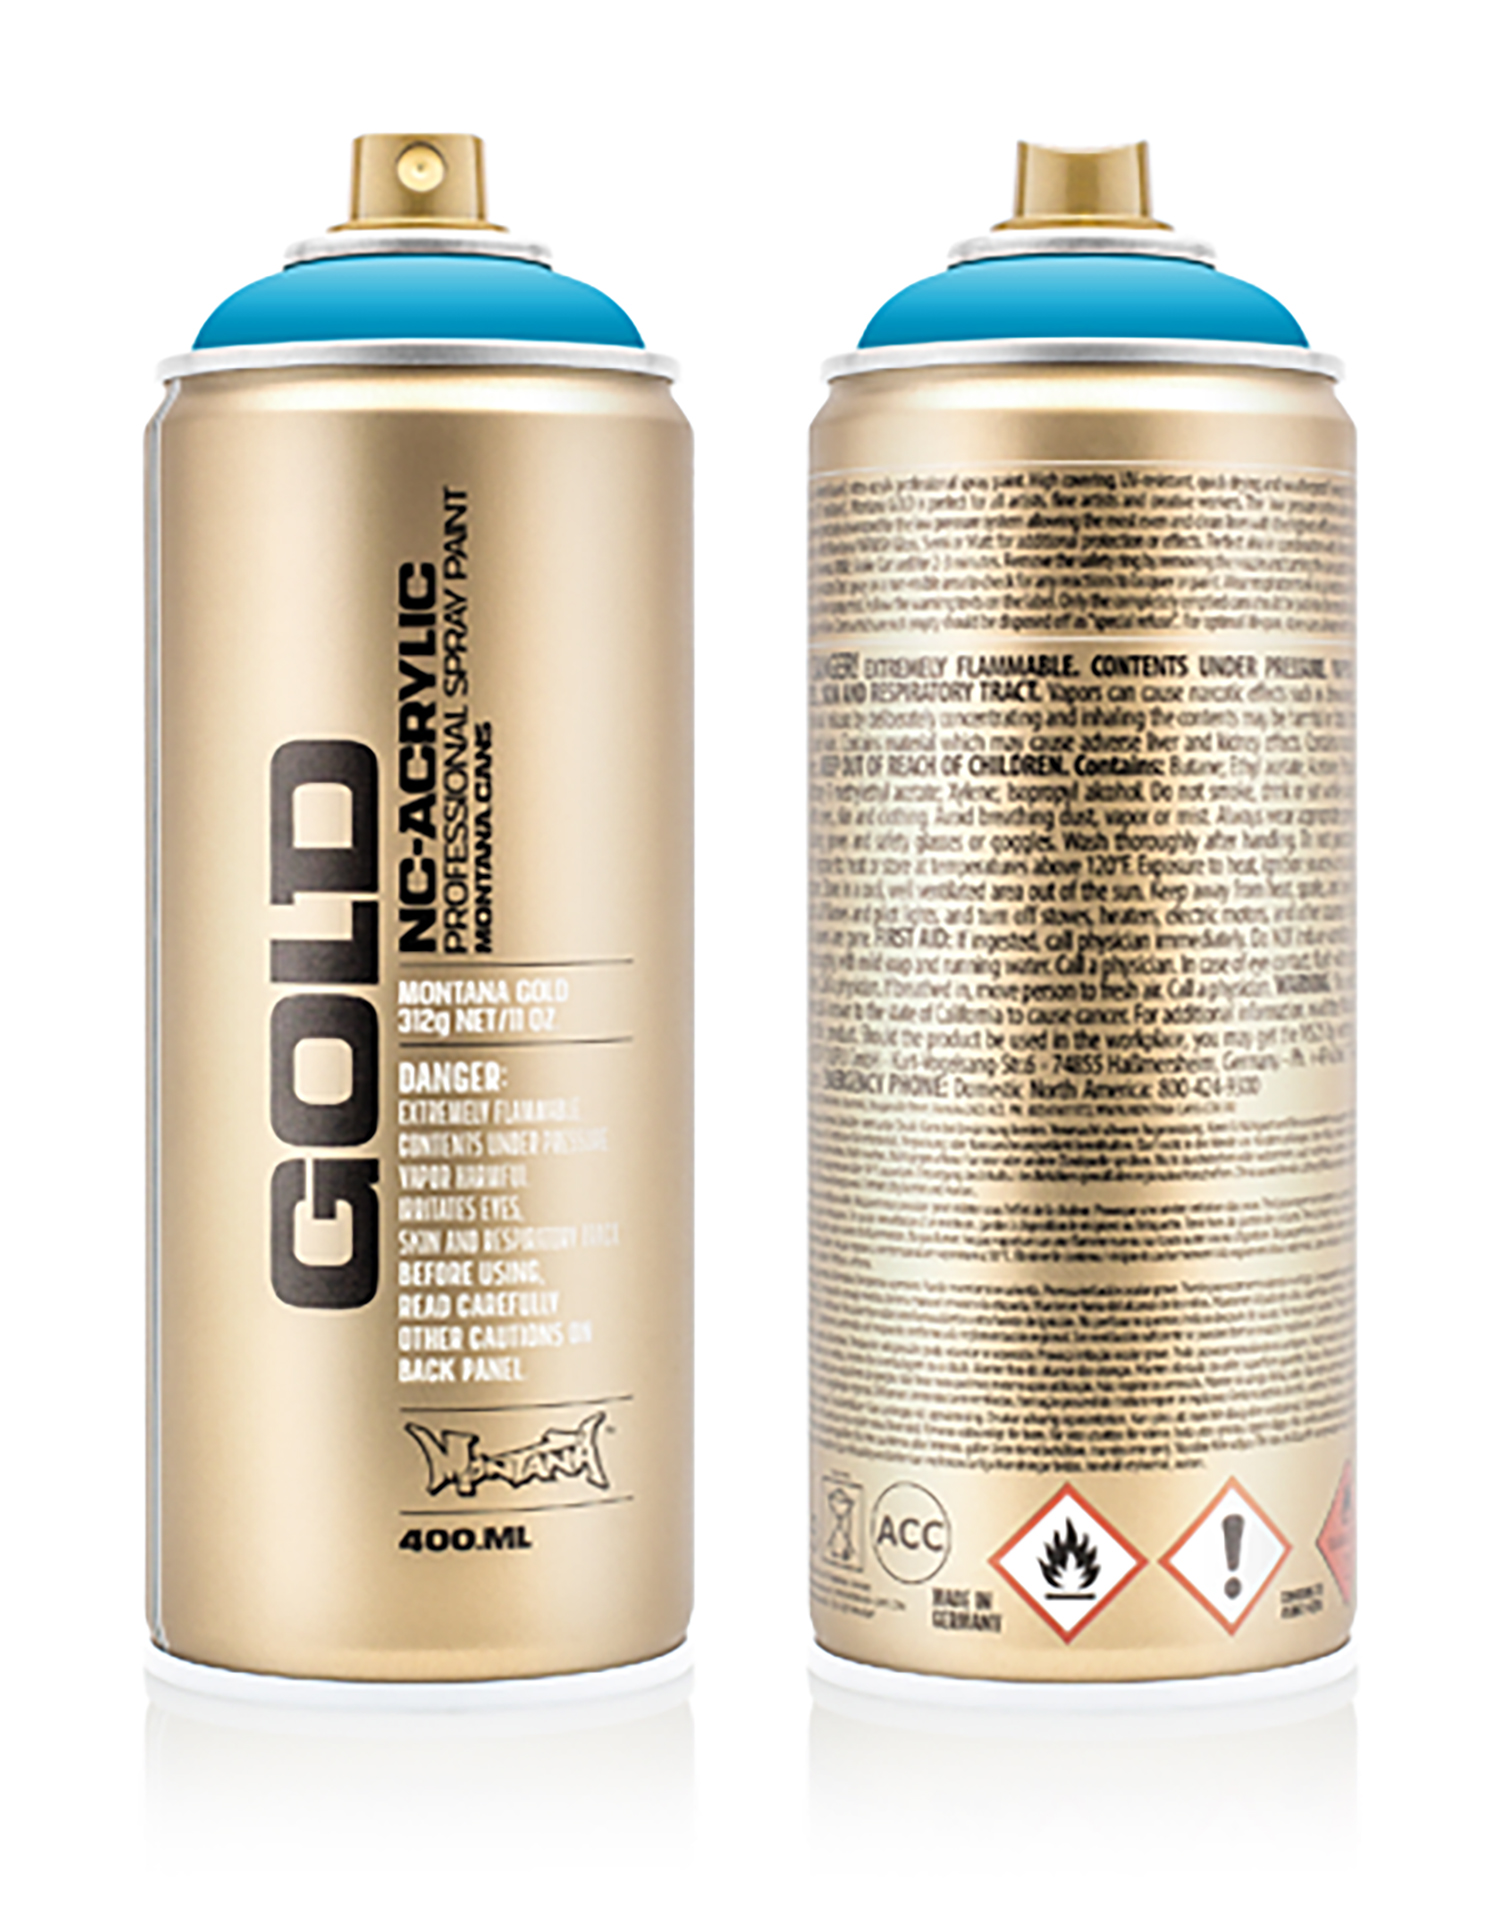 MONTANA-GOLD-SPRAY-400ML-G-5040